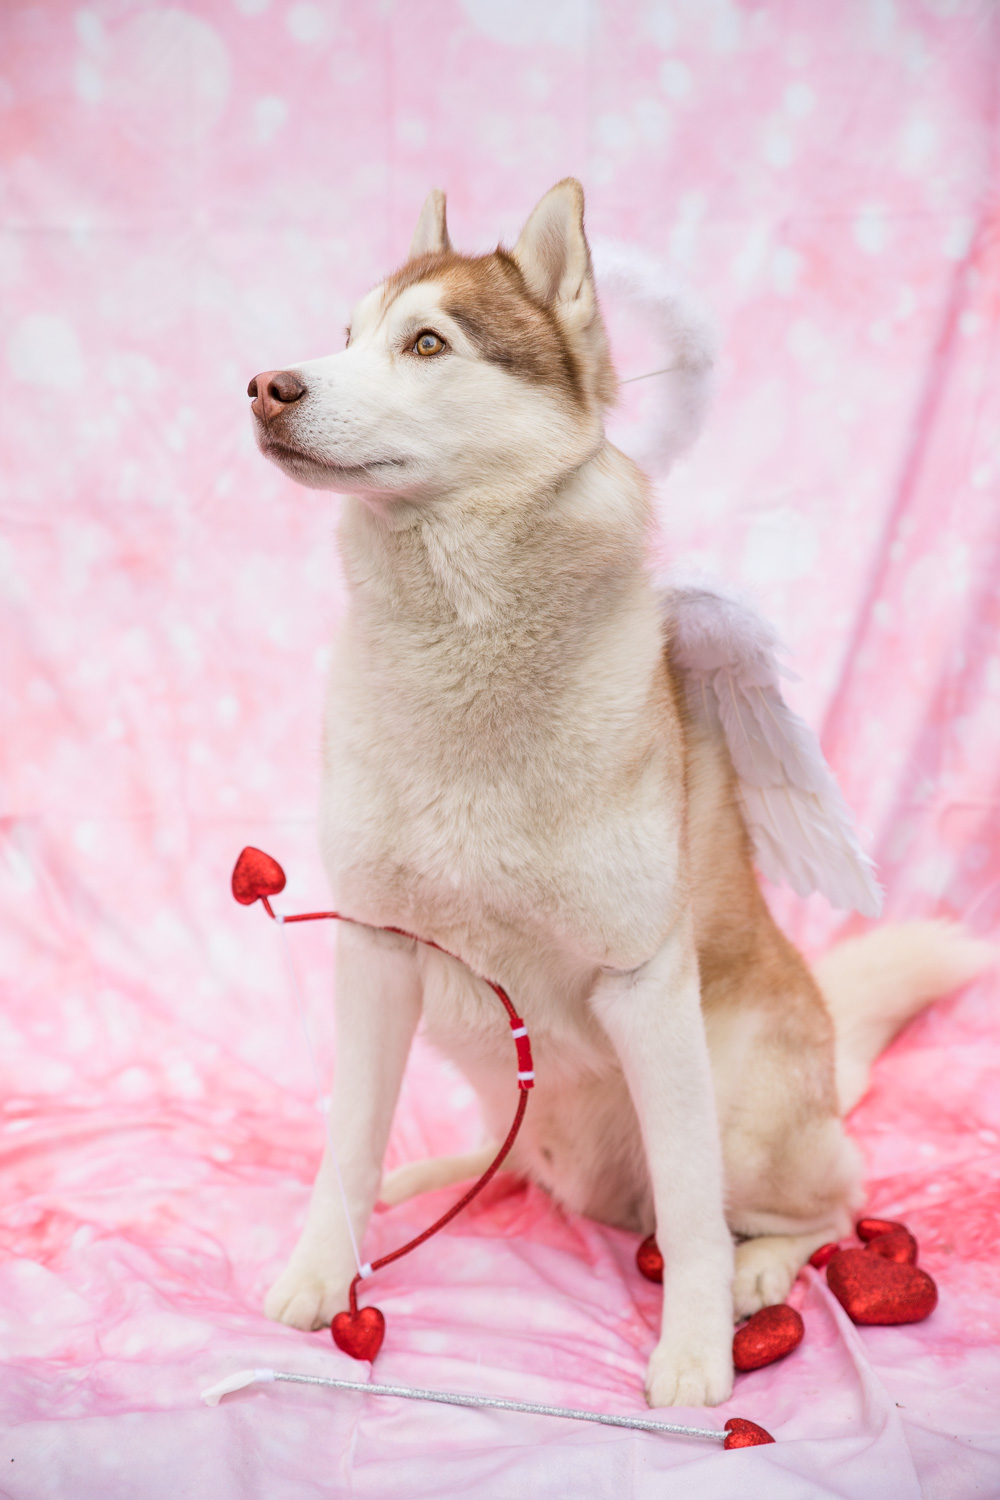 Cupid dog! I had quite a few lessons learned with this first styled monthly goals shoot with Ryder (I should probably bathe and comb him before shoots #badliz, his front legs are stacked awkwardly wide, the backdrop needed to be washed and/or ironed and then clipped and taped smooth, etc.), but hey, it's still a cute start. Got any fun seasonal props lying around? I'm definitely looking for cute things for future months!